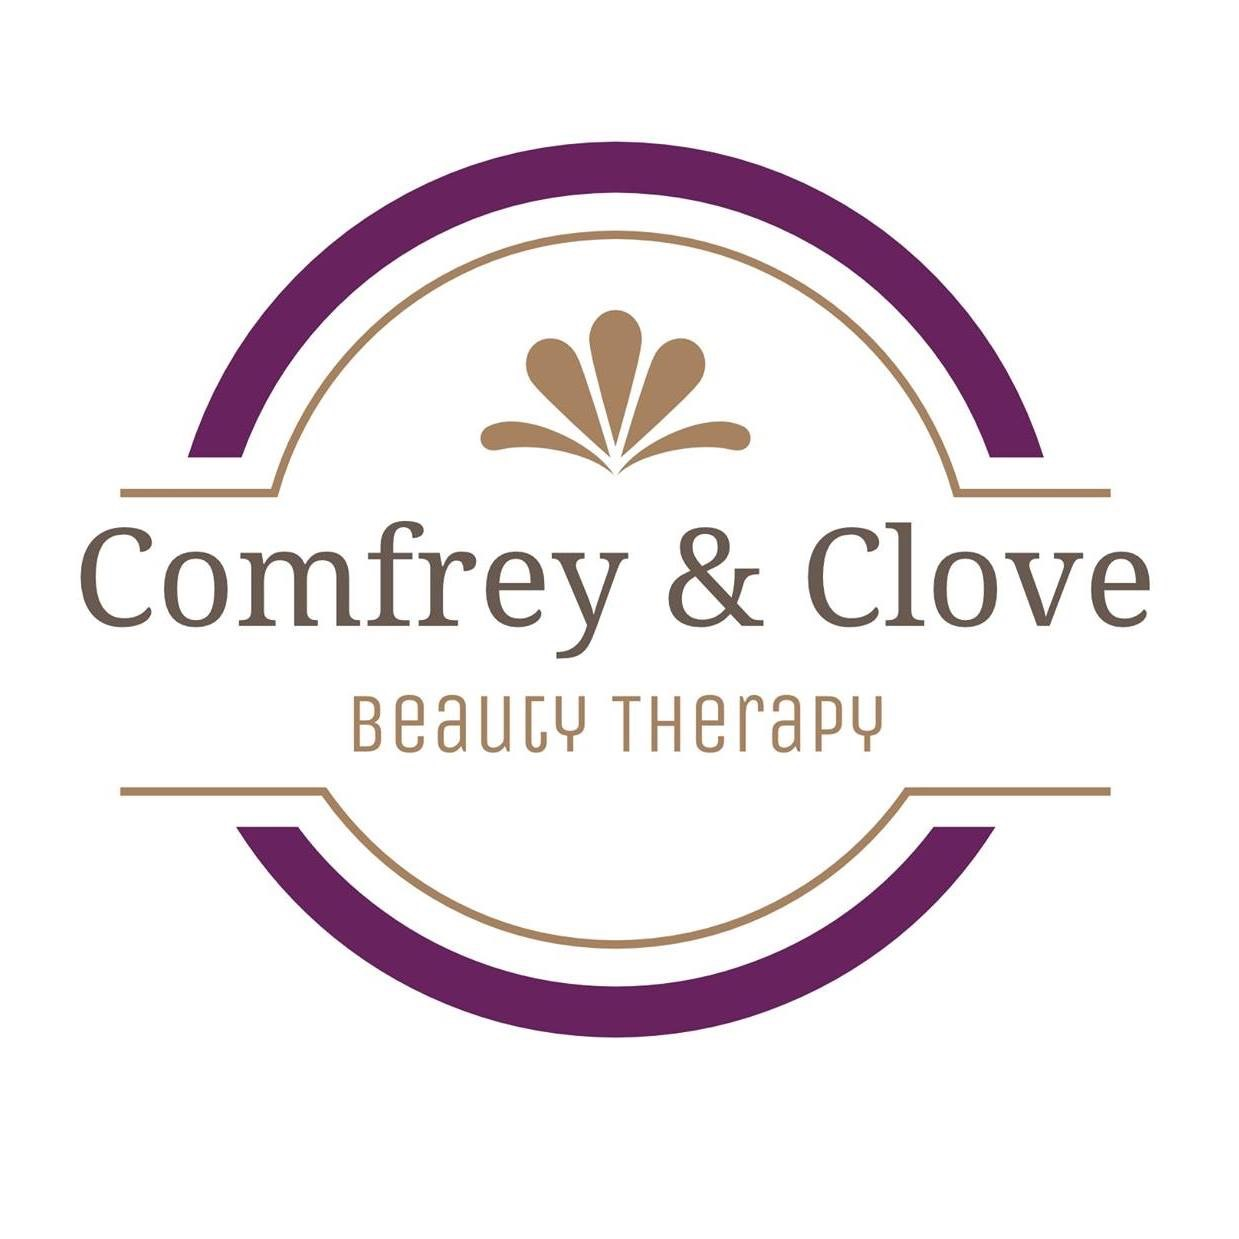 Comfrey & Clove Beauty Therapy